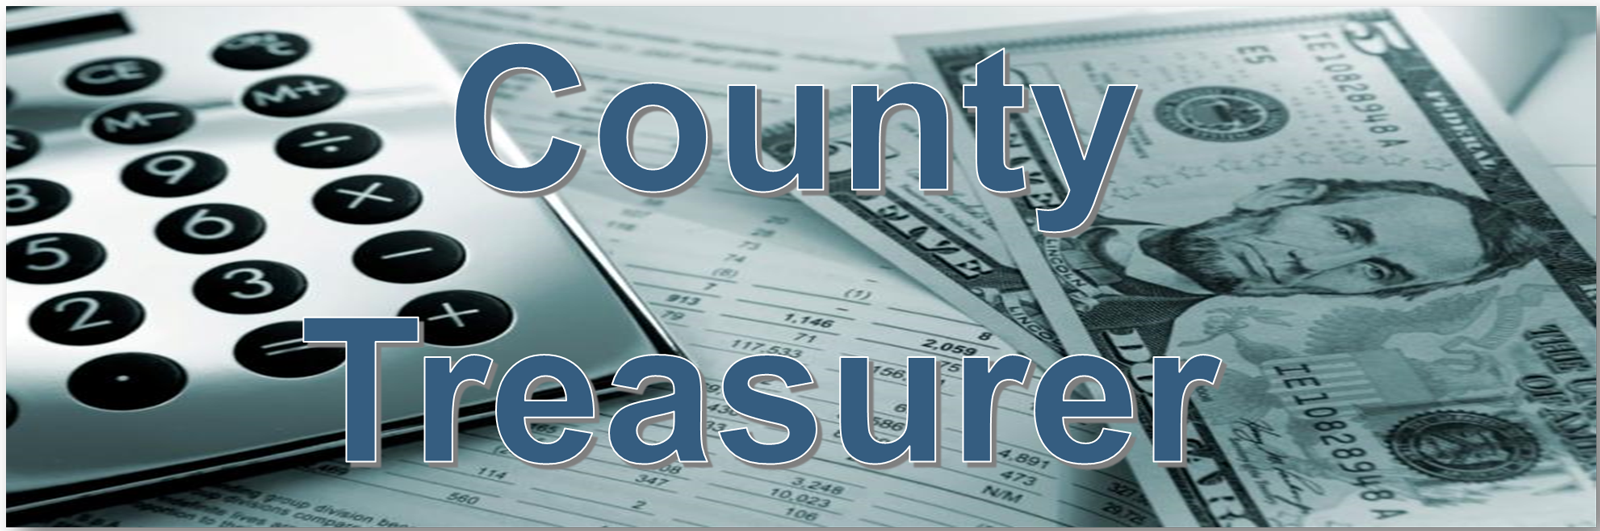 Graphic for Columbia County Treasurer Website